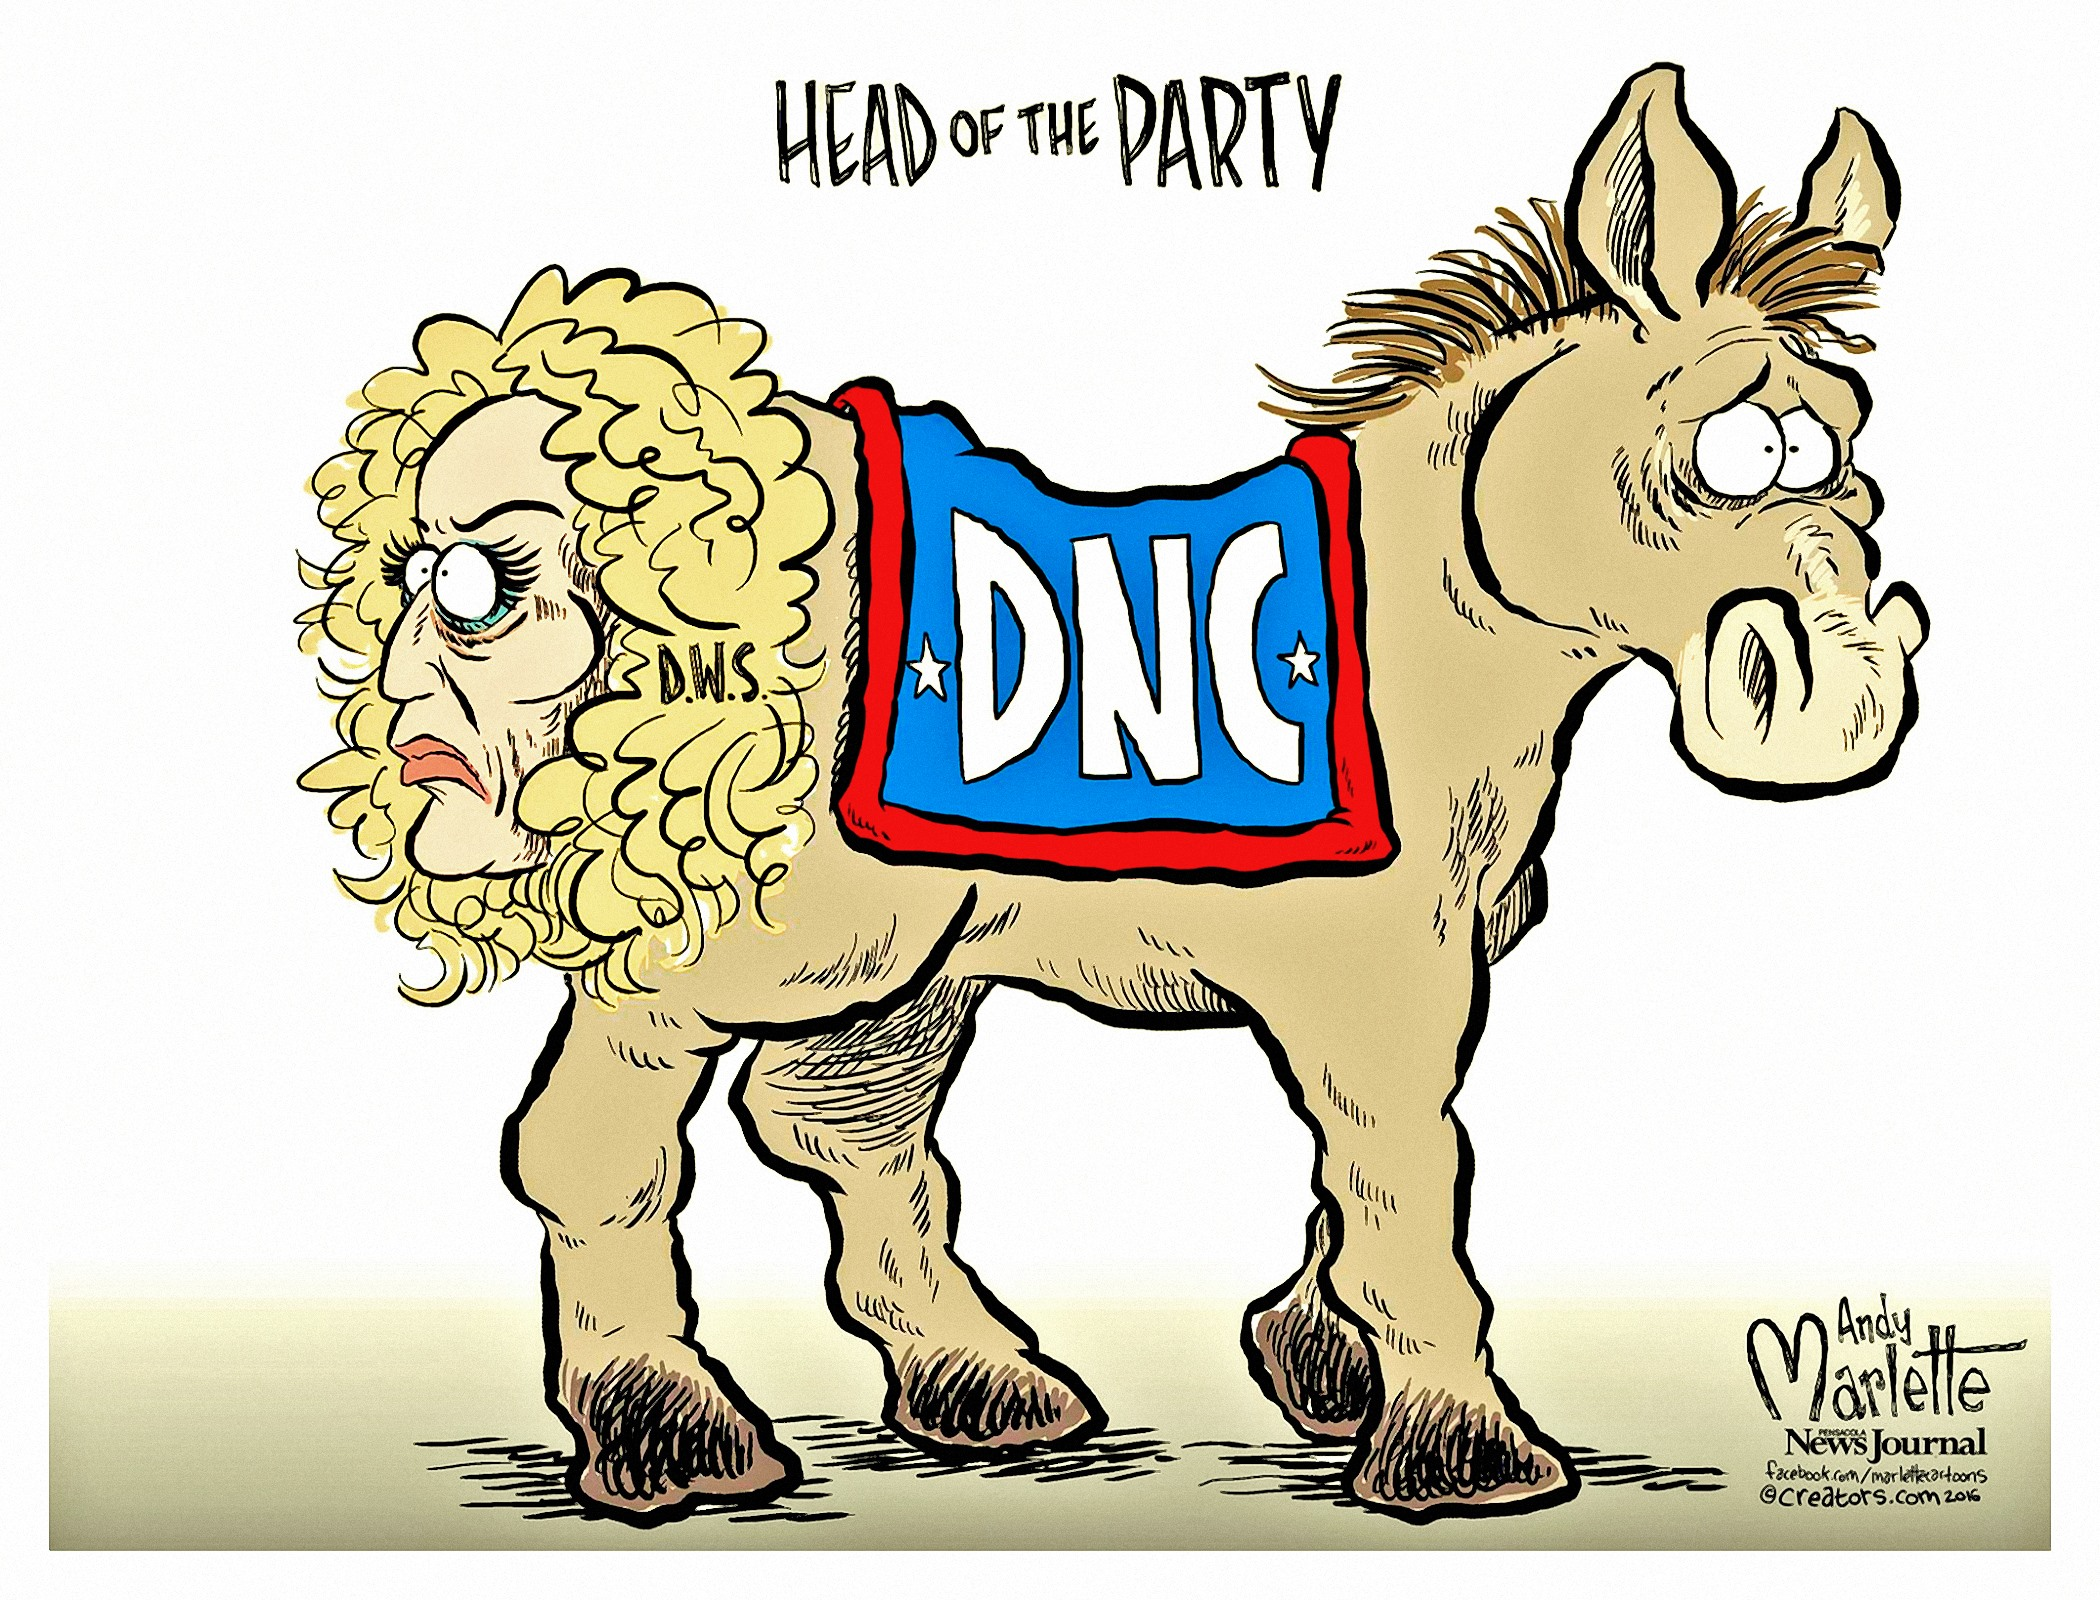 00 Andy Marlette. Head of the Party. 2016